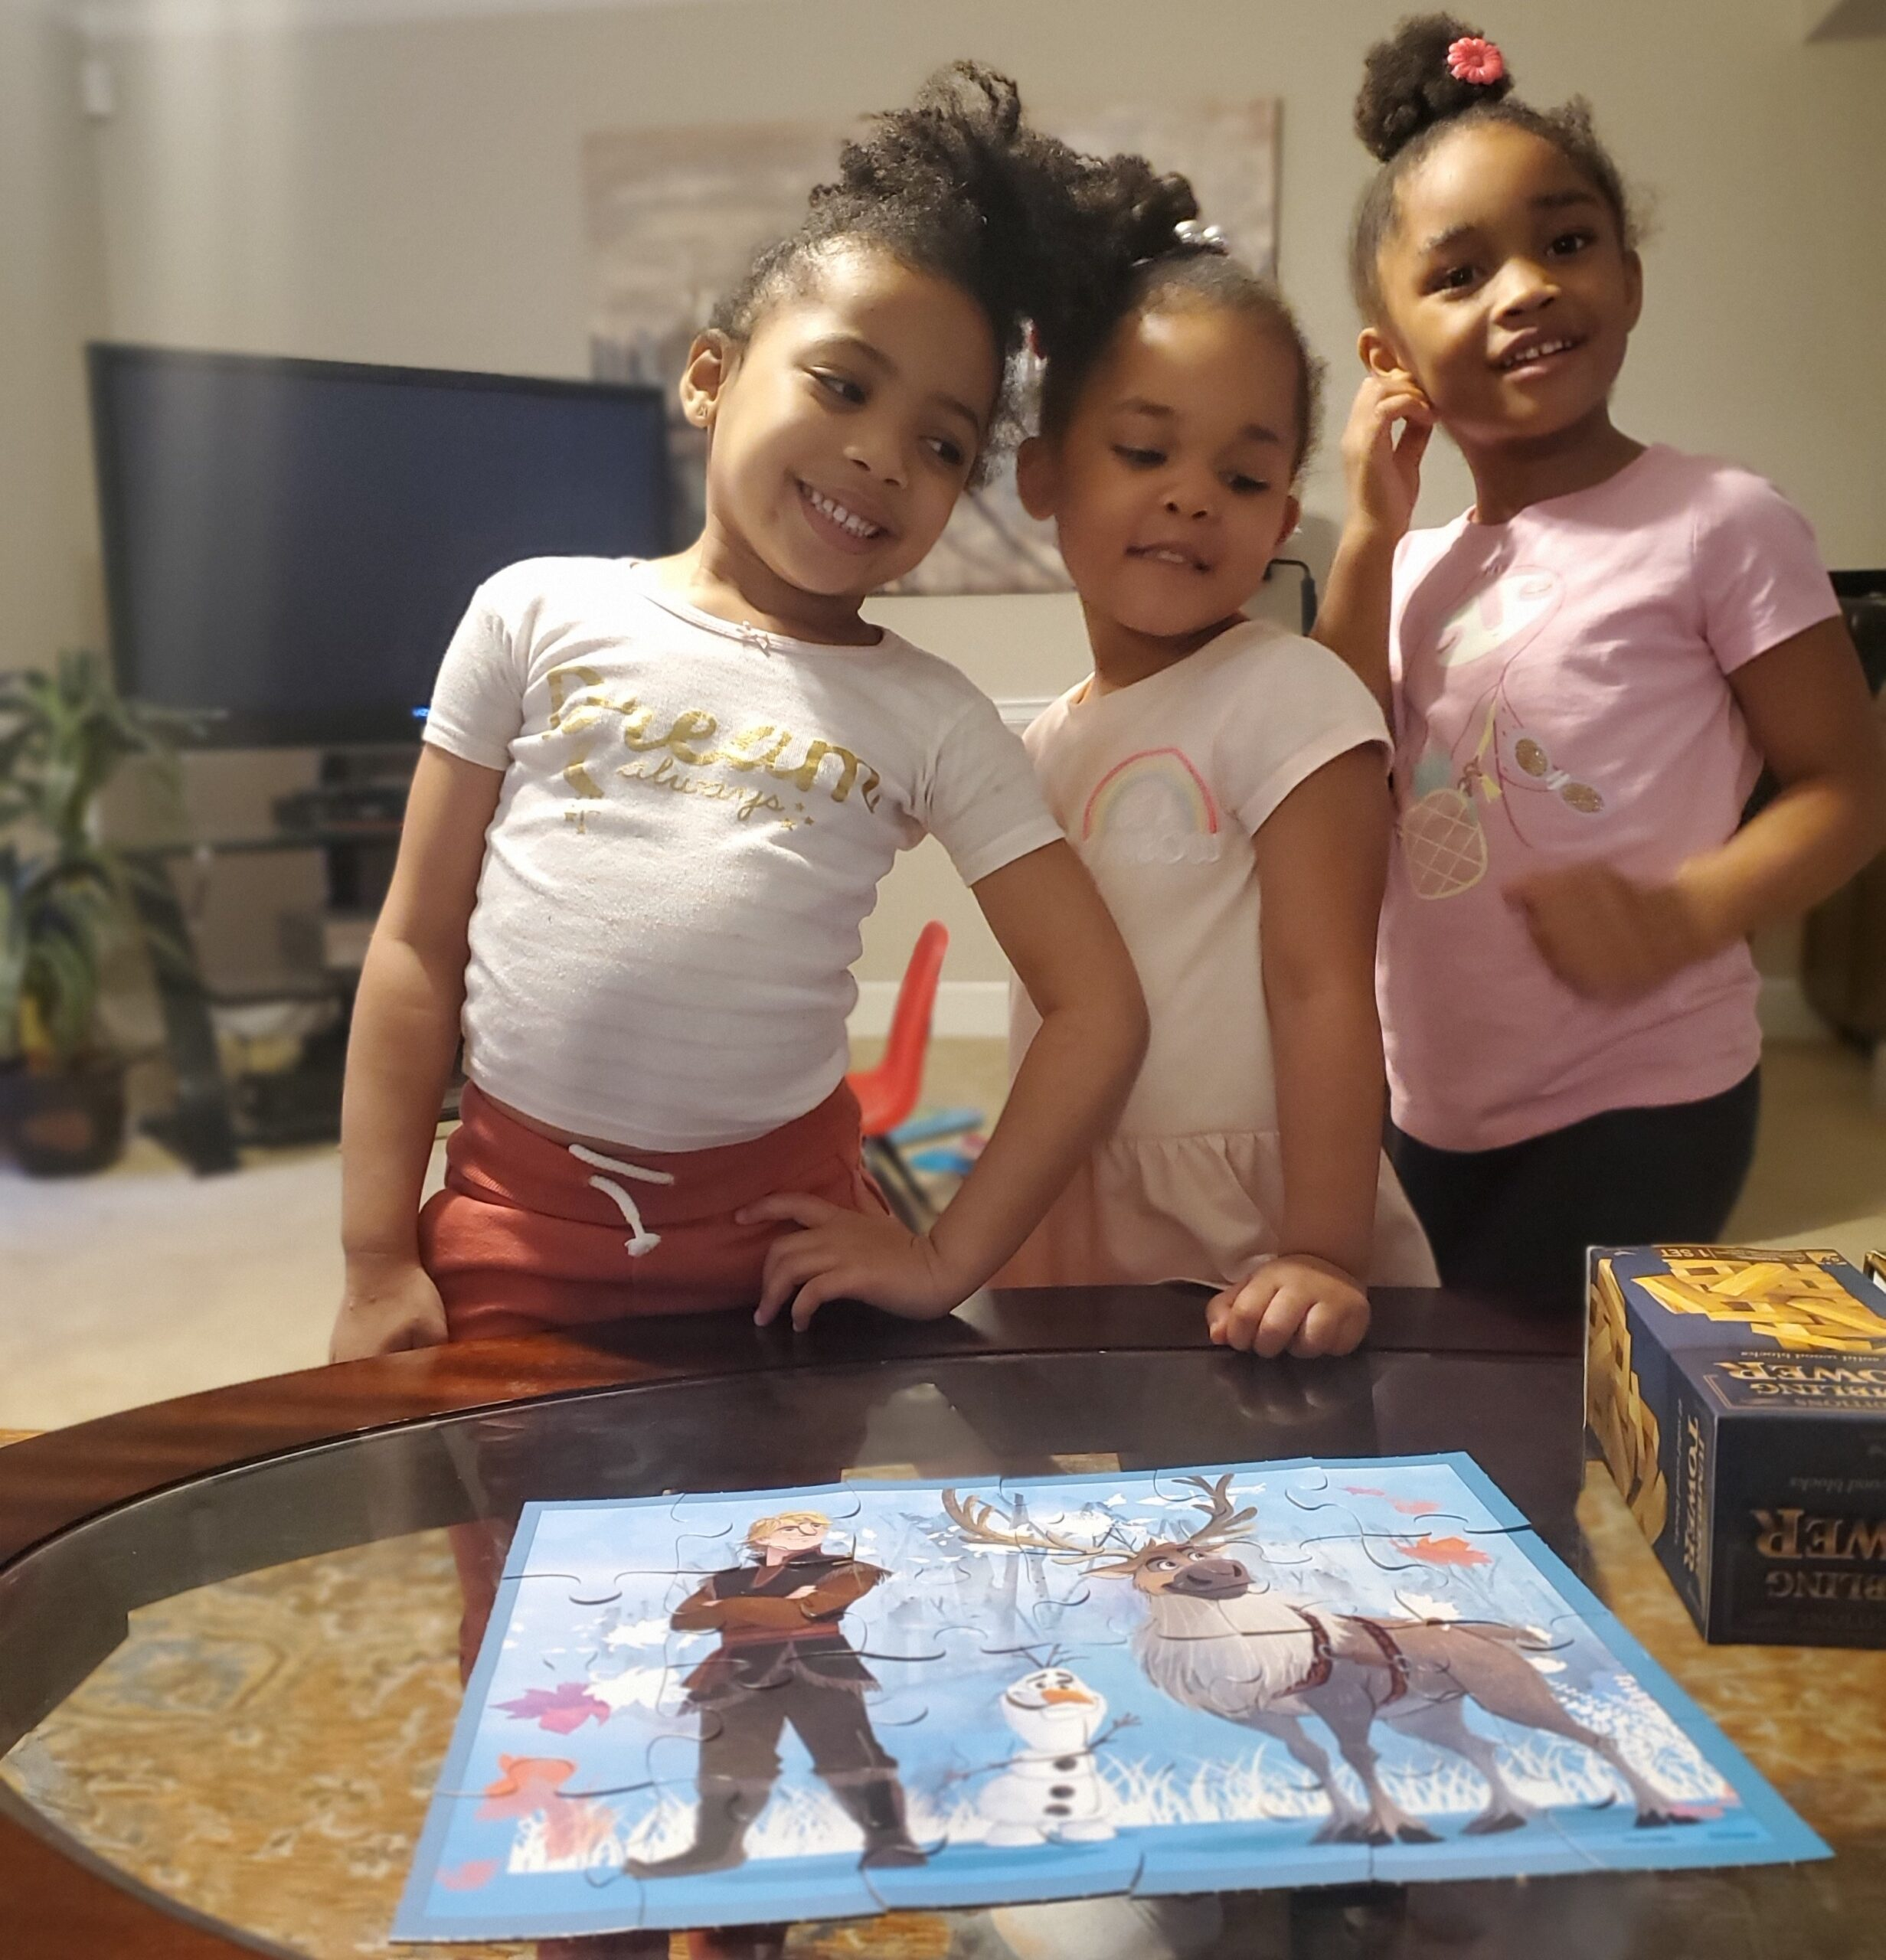 Three young Black girls stand in a living room, all smiling in front of a puzzle